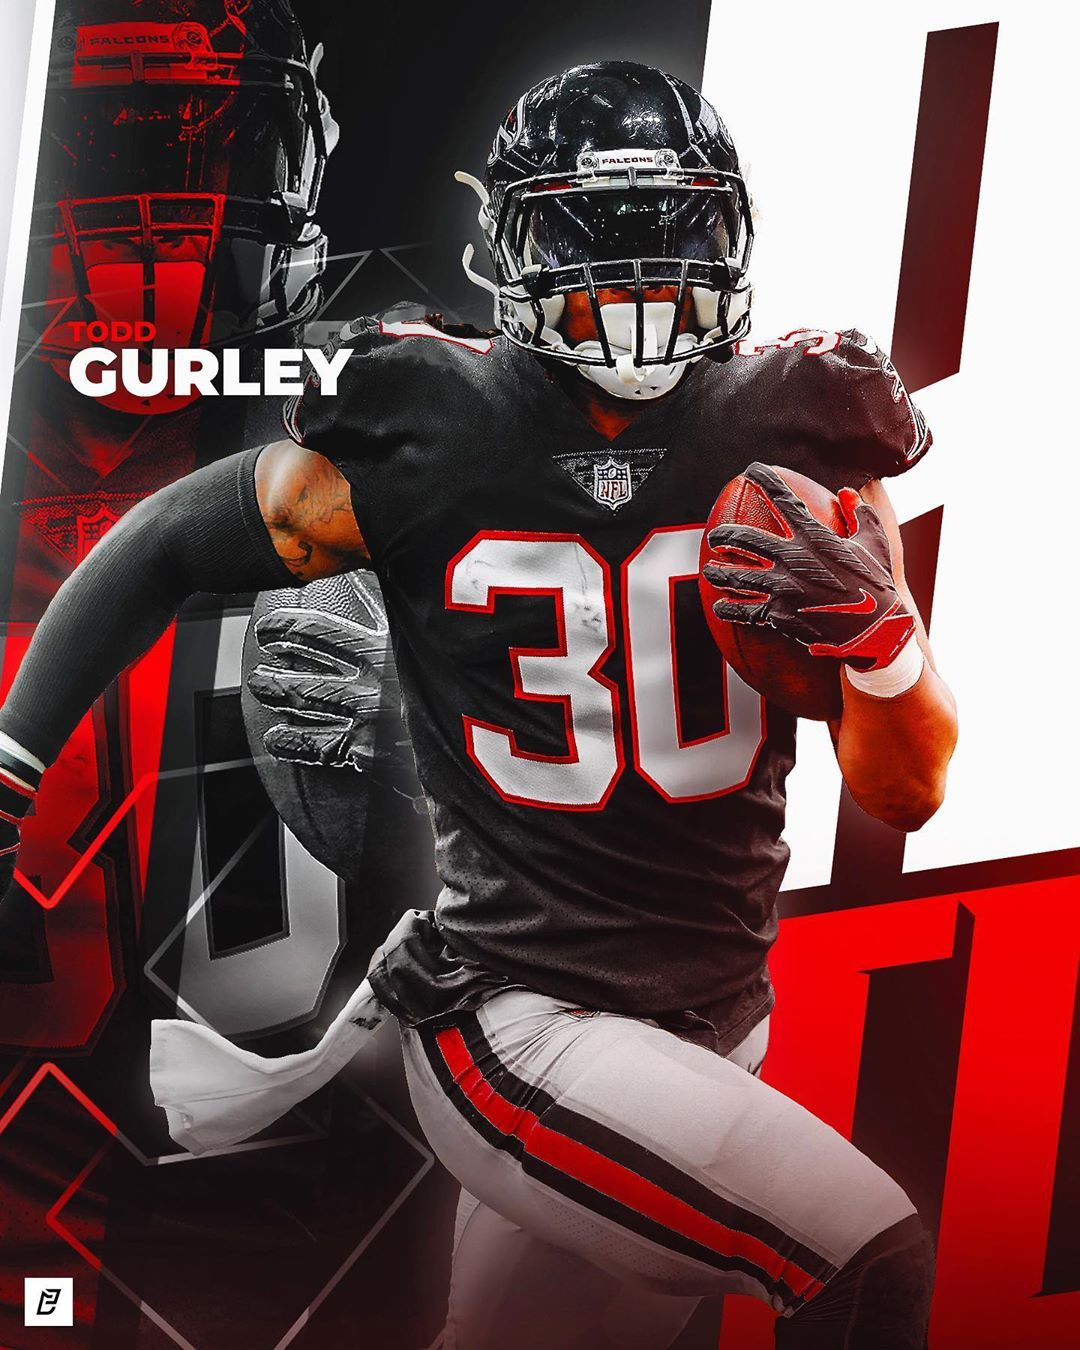 Enrique Castellano On Instagram Todd Gurley X Atlanta Falcons Would This Be Something You Guys Would In 2020 Todd Gurley Nfl Football Art Atlanta Falcons Football